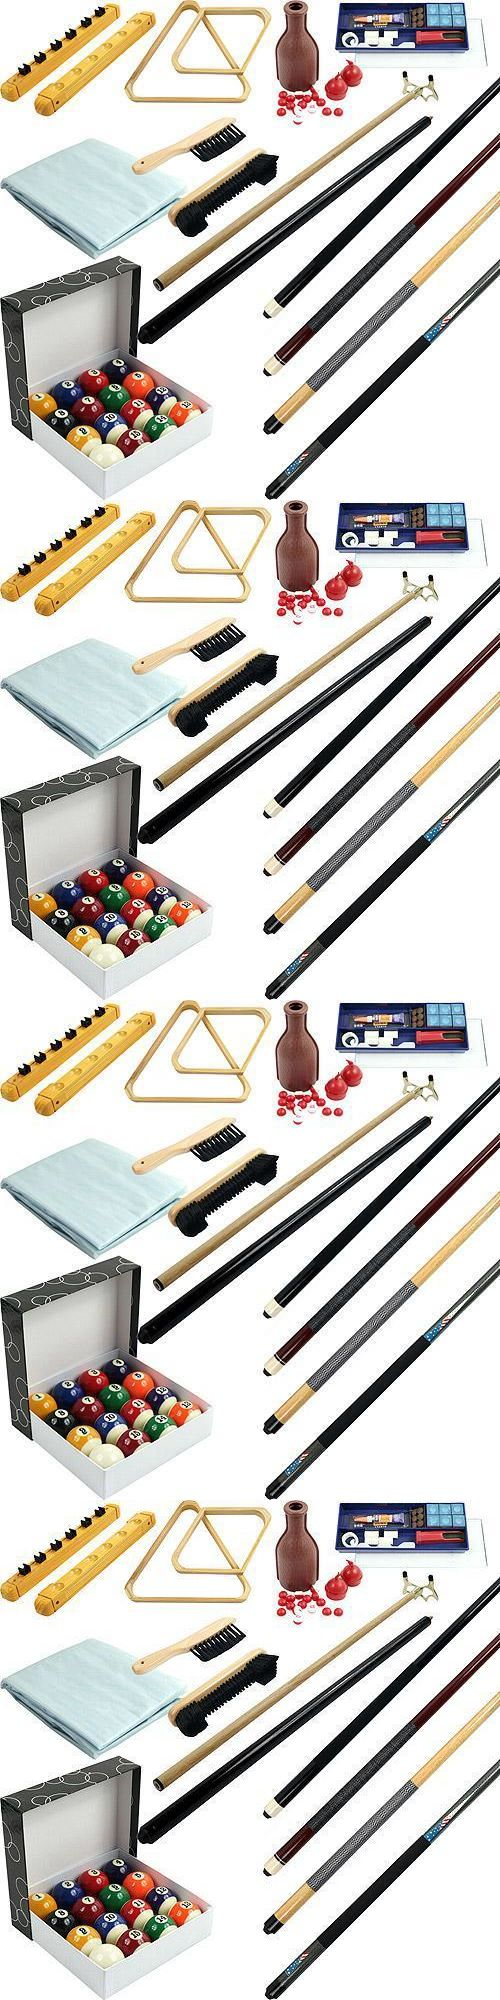 Ball and Cue Racks 75185: Billiard Accessory Kit 32 Pcs Pool Table Stick Ball Set -> BUY IT NOW ONLY: $104.04 on eBay!